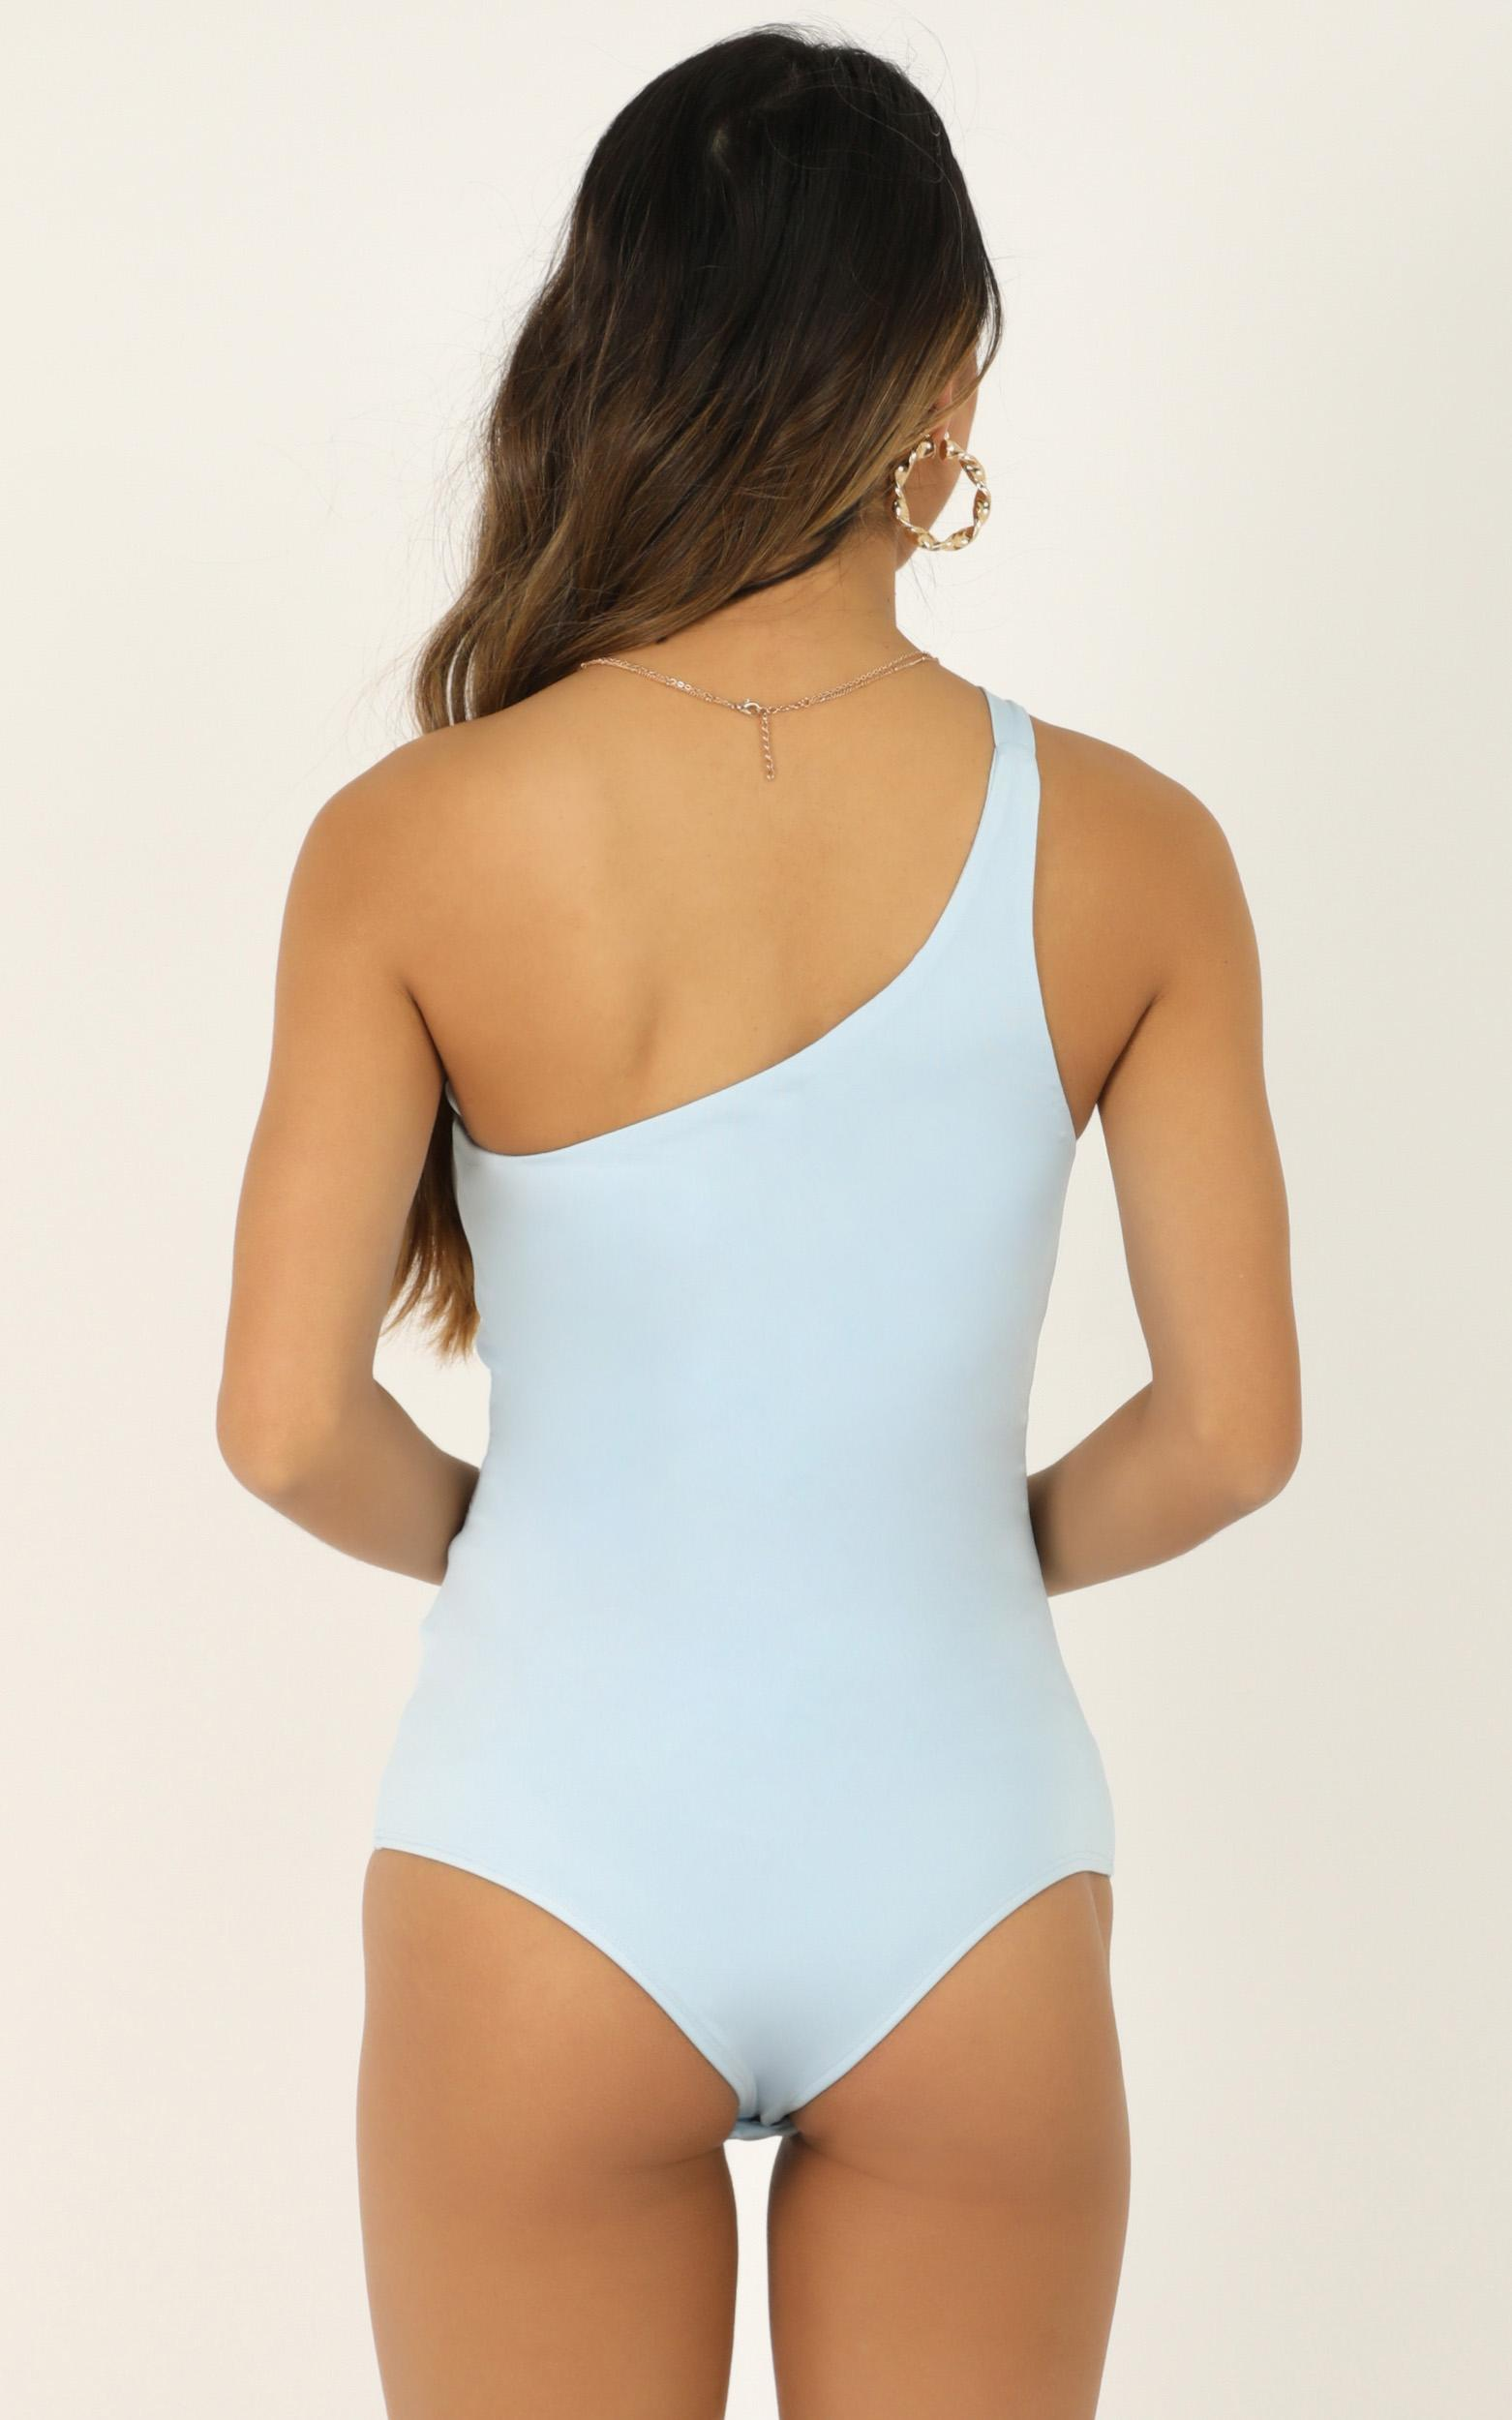 Checked In Bodysuit In powder blue - 20 (XXXXL), Blue, hi-res image number null